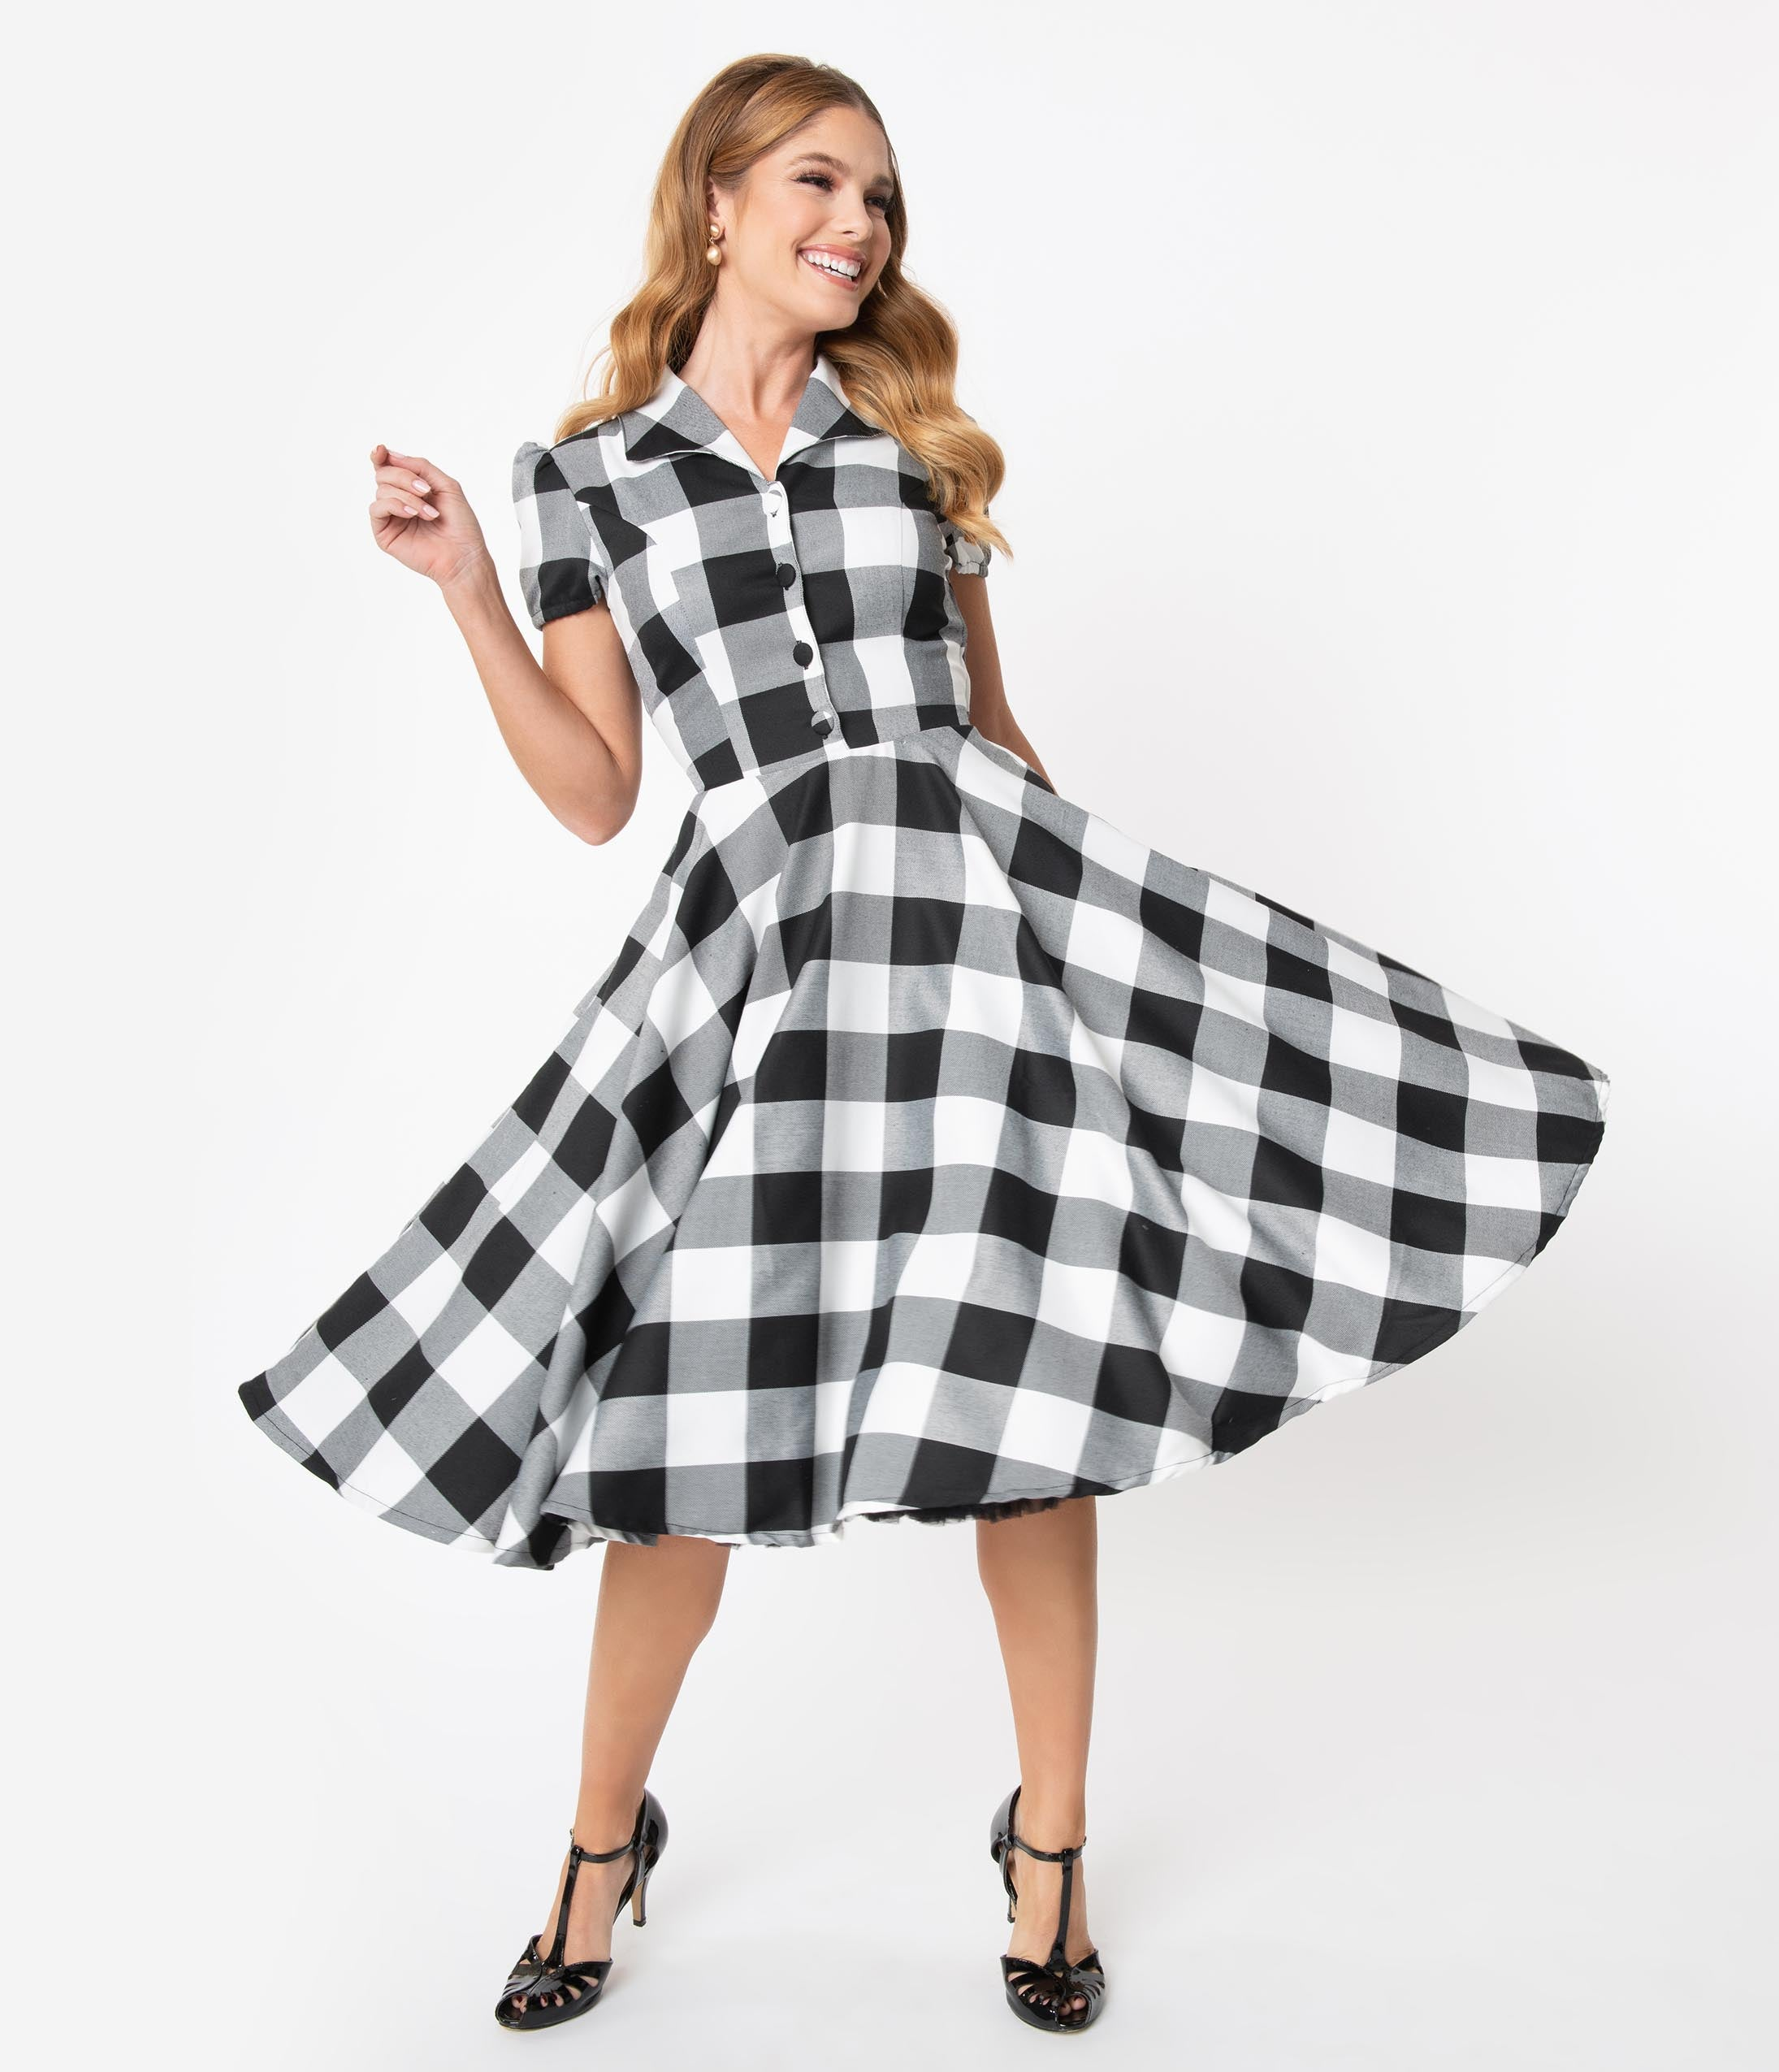 500 Vintage Style Dresses for Sale | Vintage Inspired Dresses 1950S Style Black  White Gingham Mona Swing Dress $78.00 AT vintagedancer.com